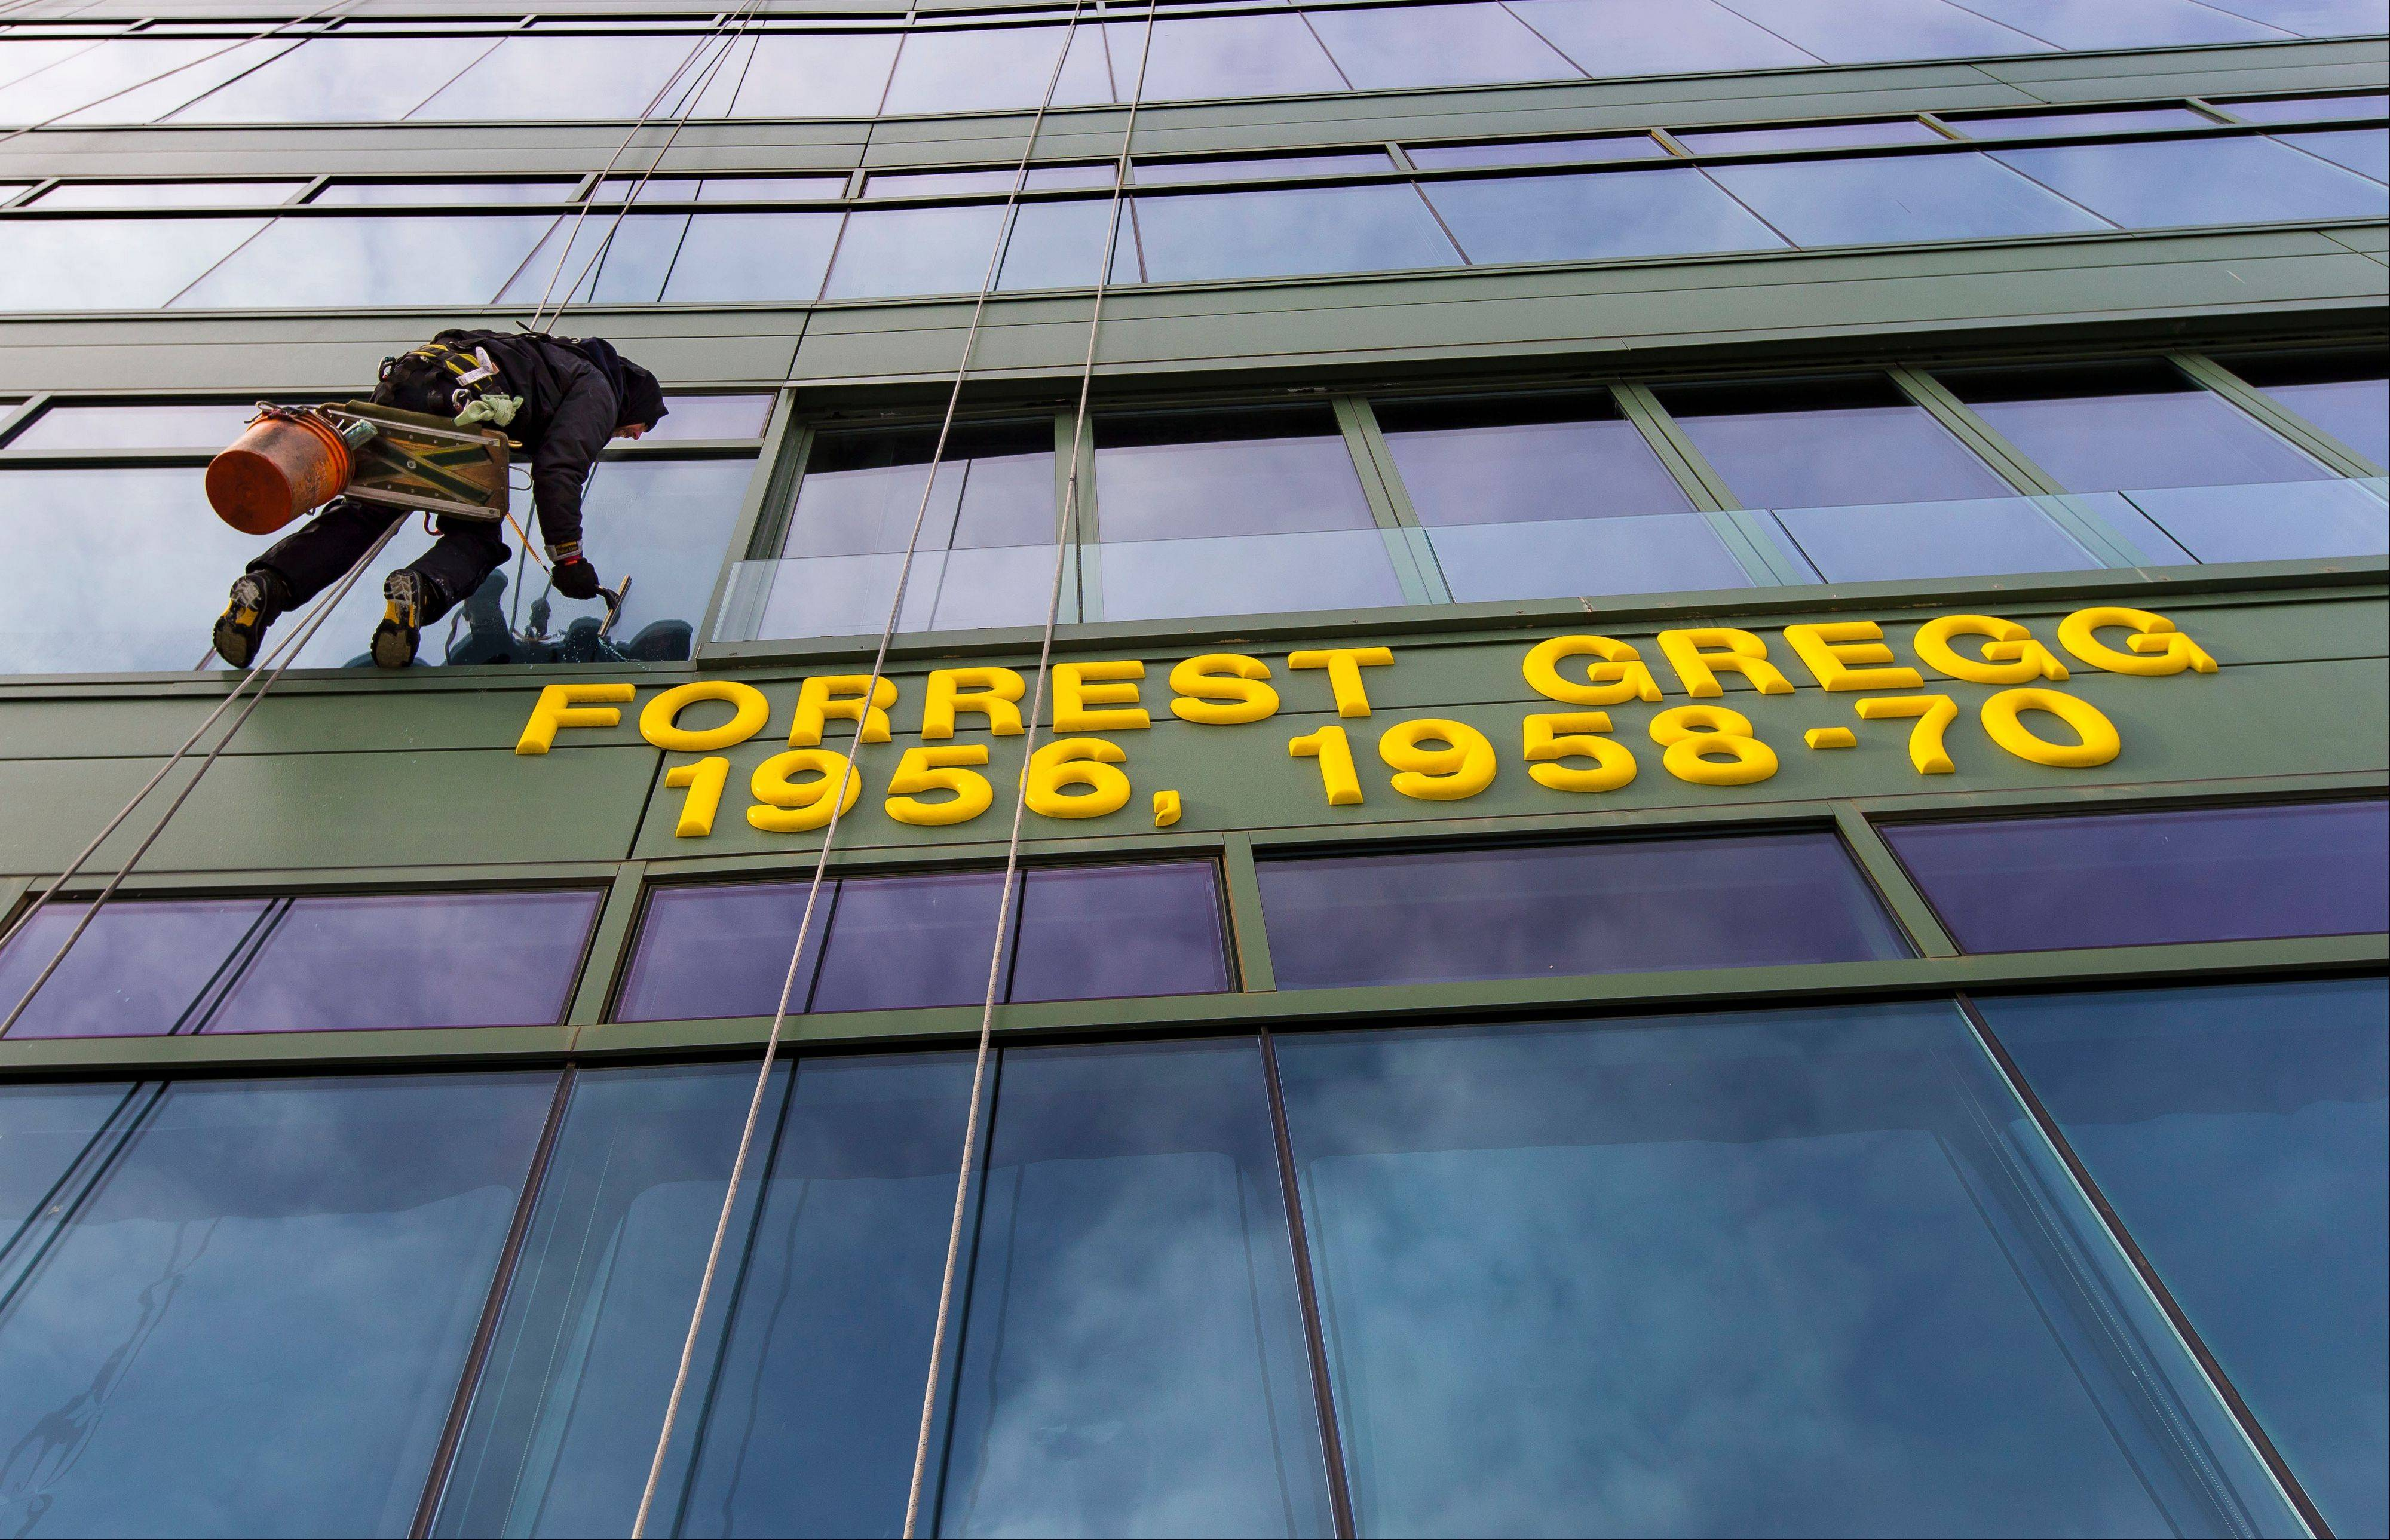 Jeff Anderson cleans the windows Friday on the sky boxes at Lambeau Field in Green Bay, Wis.